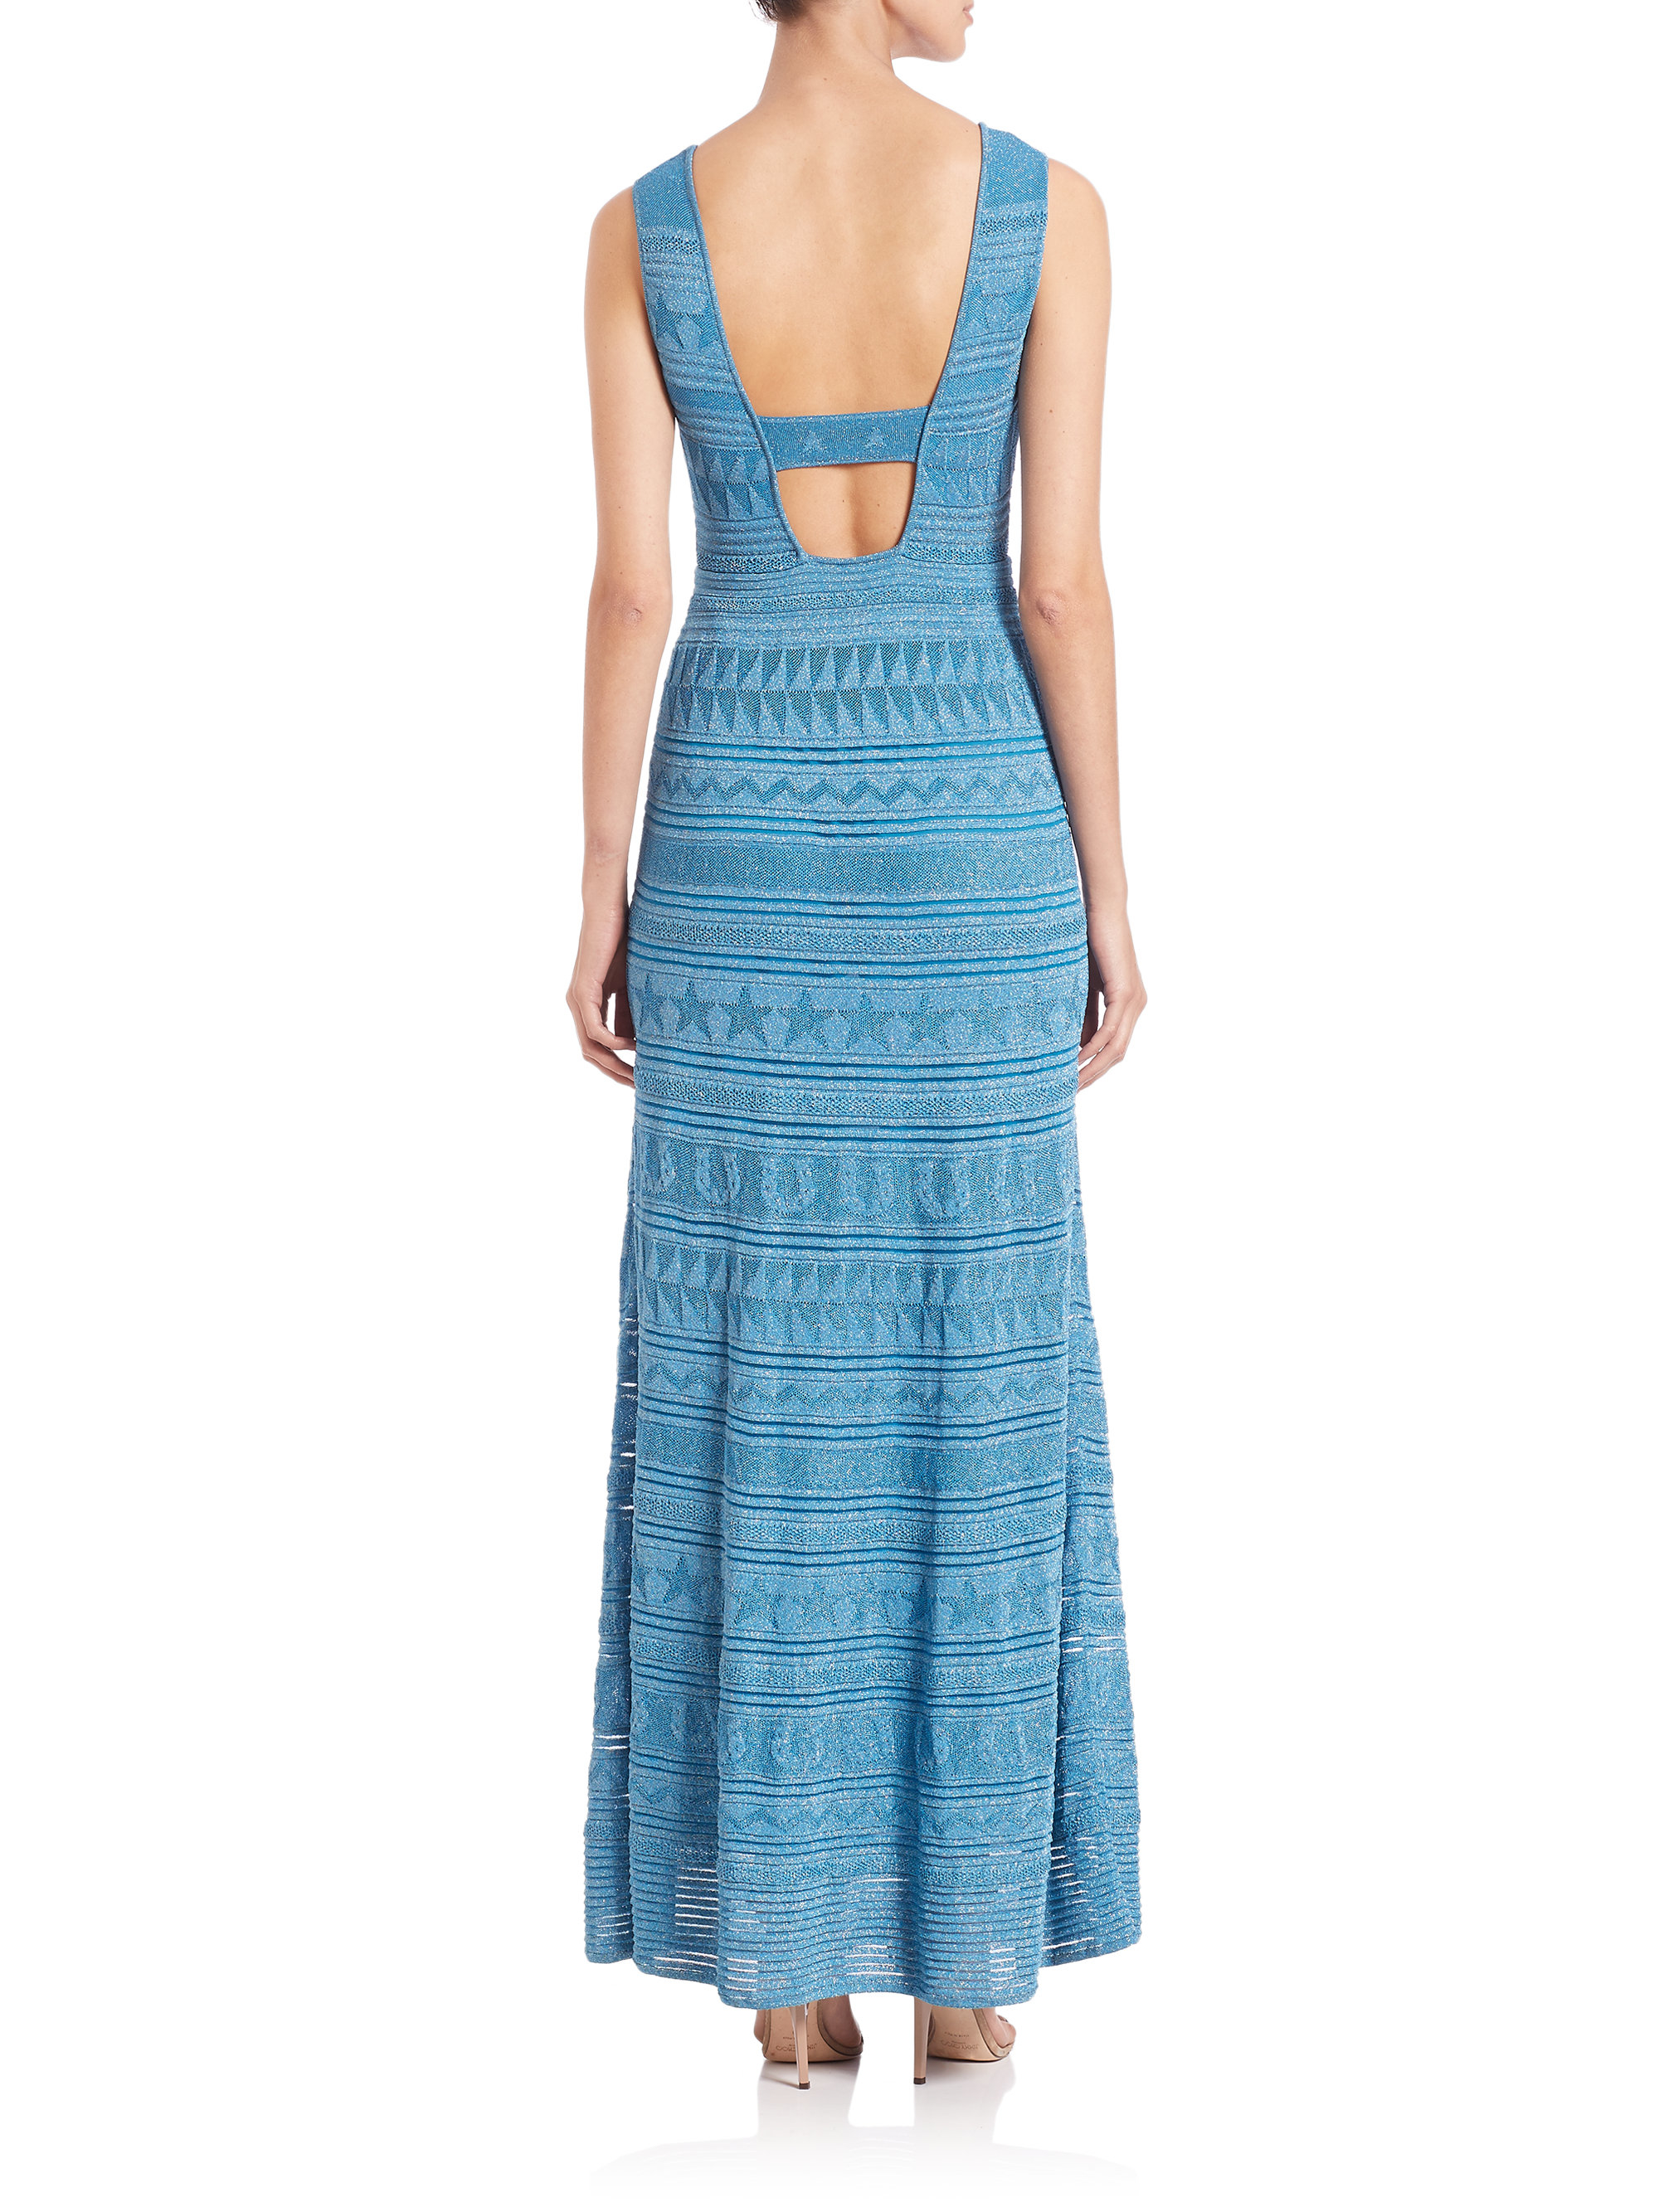 M missoni Lurex Stretch Maxi Dress in Blue | Lyst